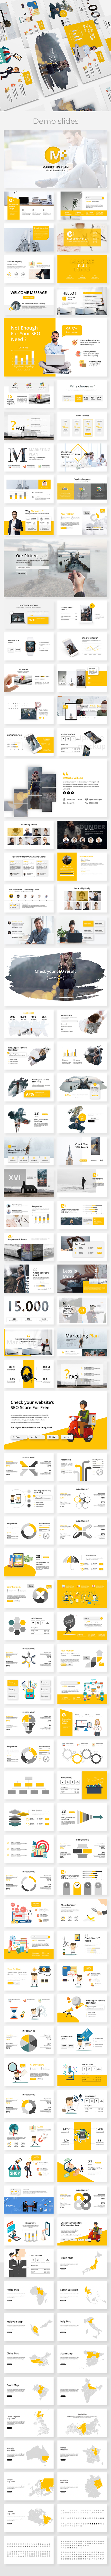 Marketing Plan Powerpoint Template - Business PowerPoint Templates